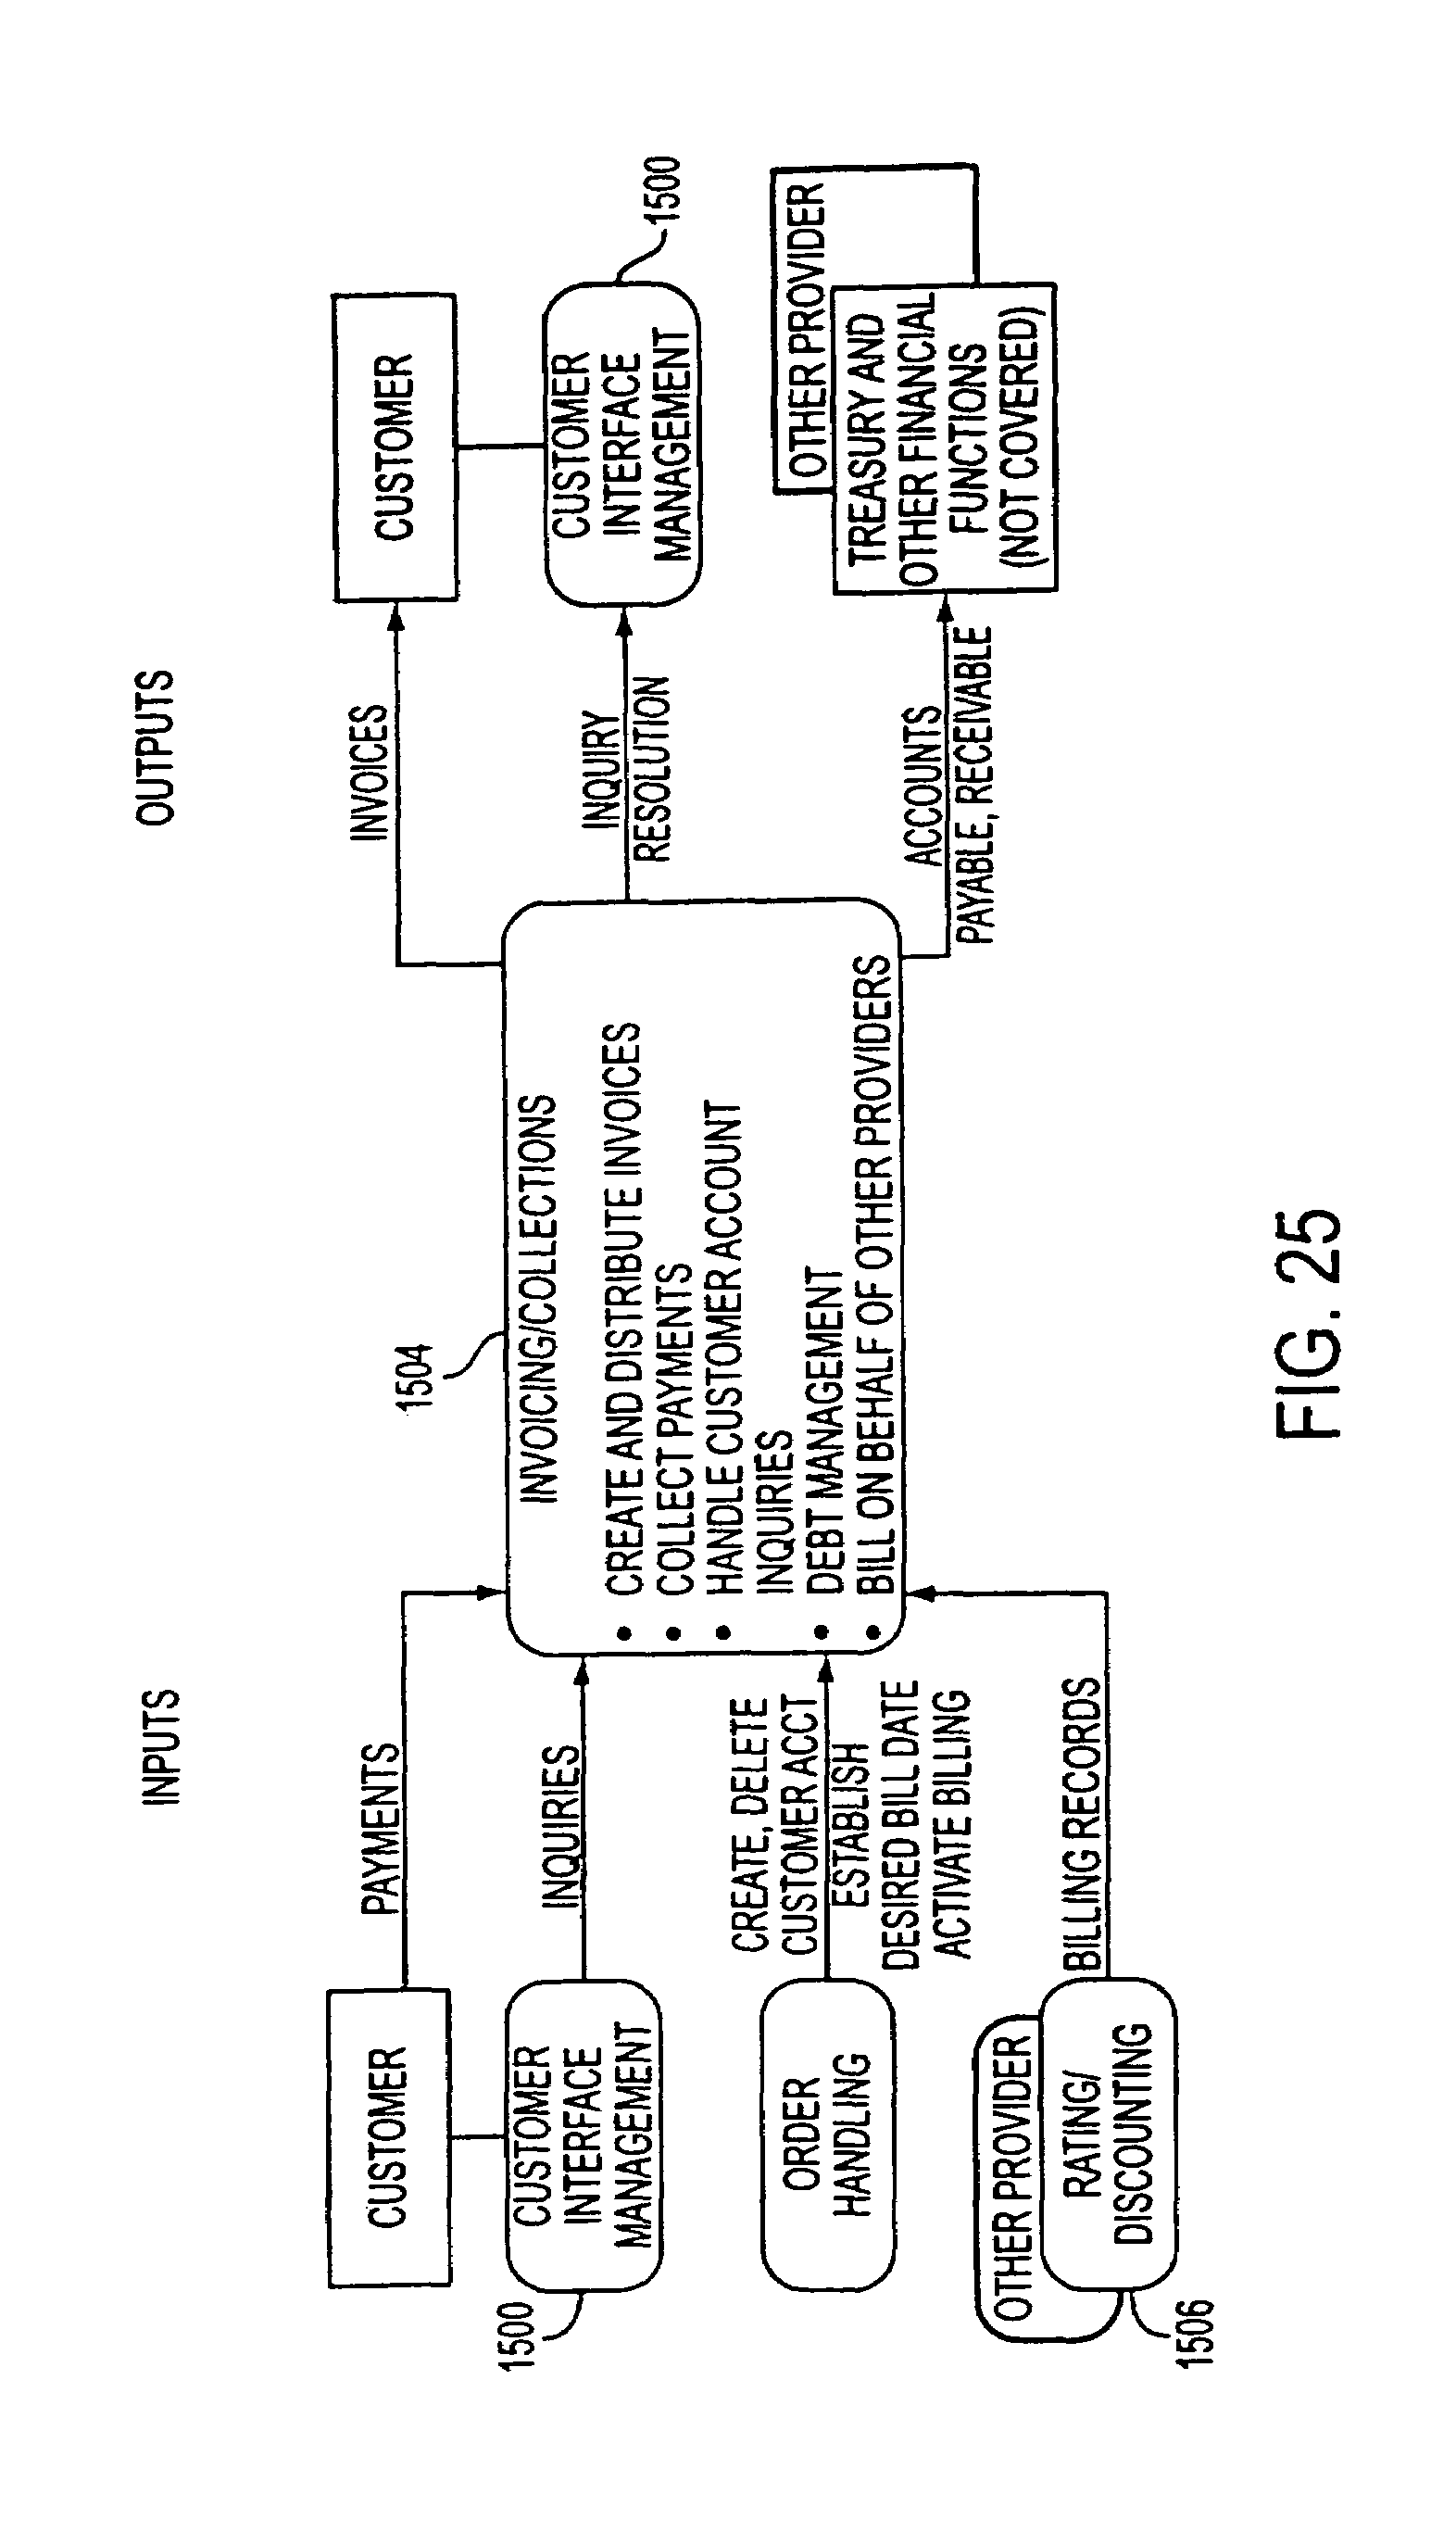 Patent Us 7124101 B1 Law Resistor Combinations Analogy In Water Circuit Index Dc Circuits Images